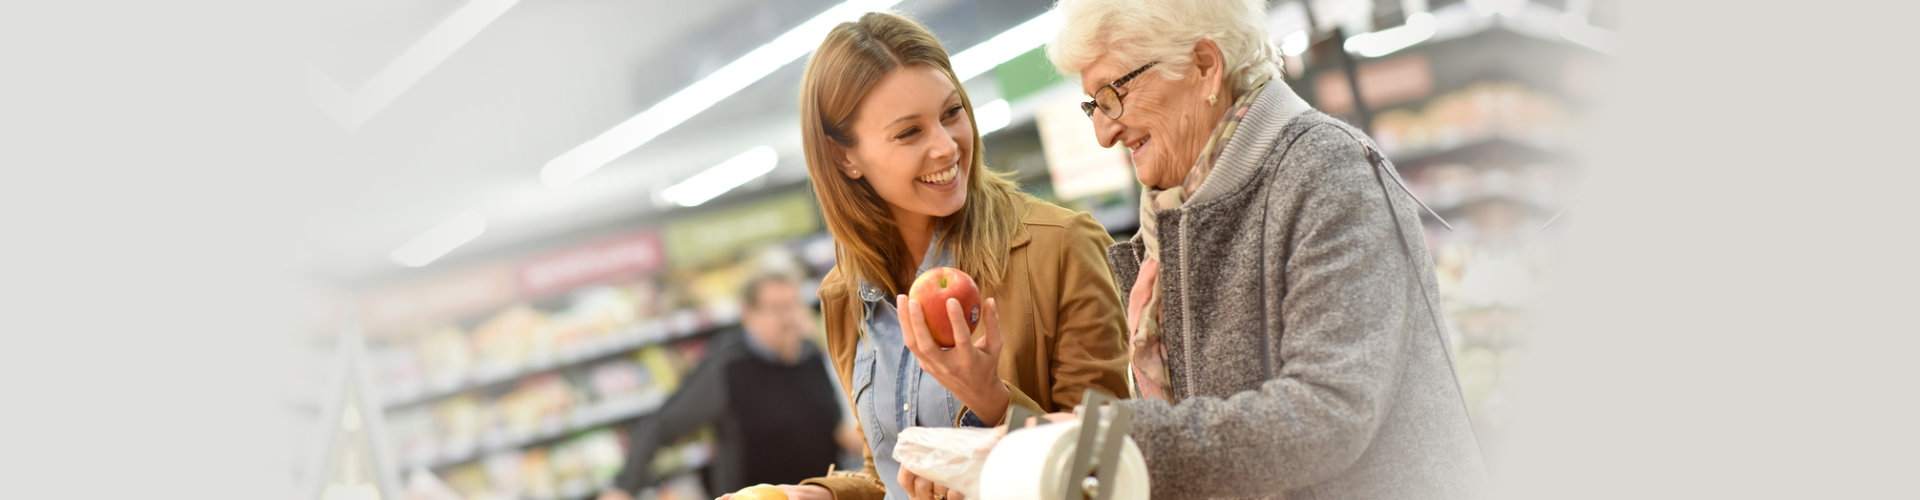 senior woman going grocery with her caregiver